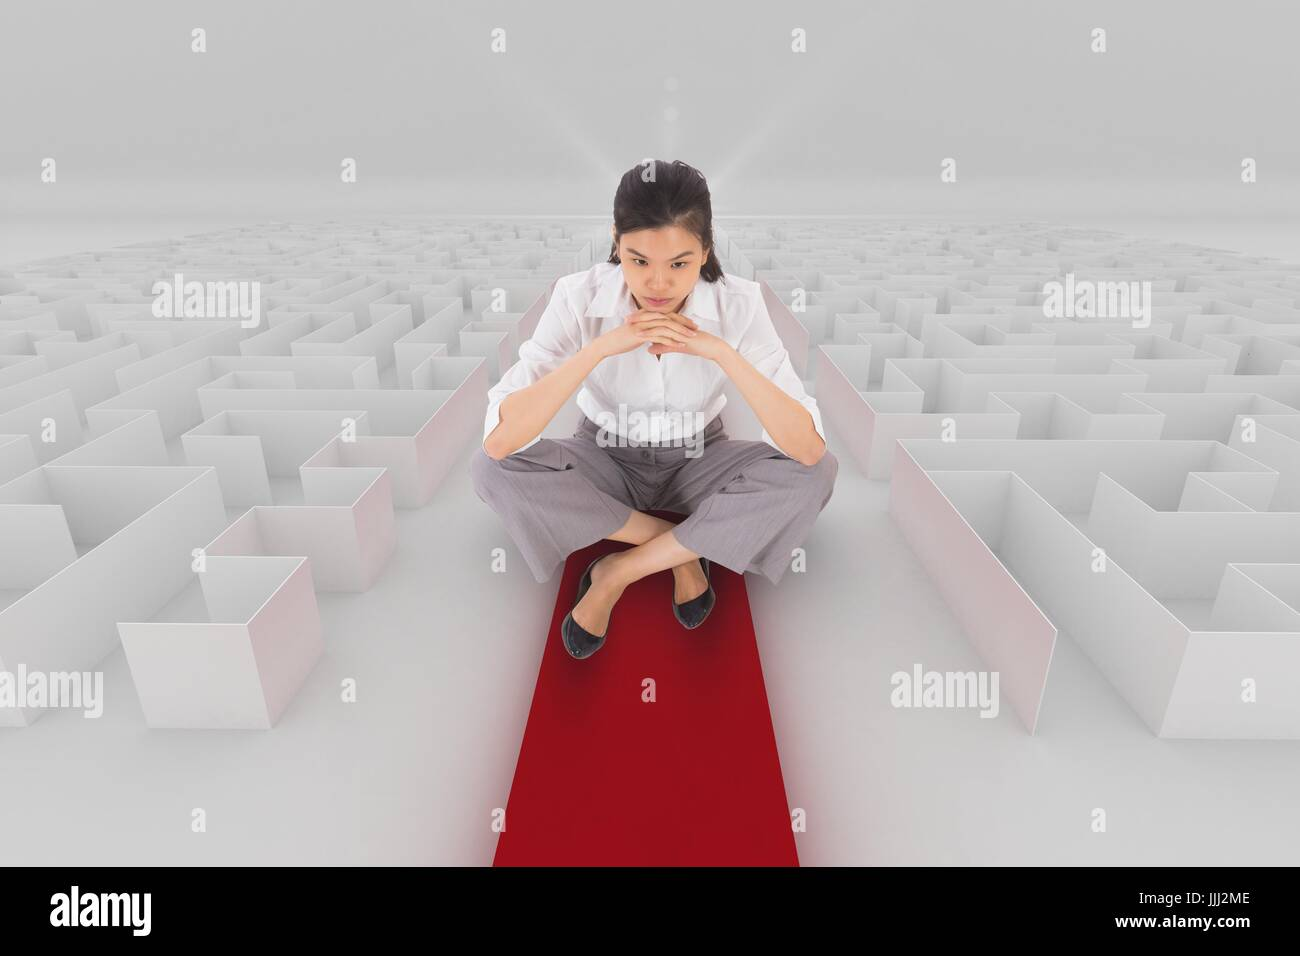 Woman sitting on a 3d maze with an arrow - Stock Image